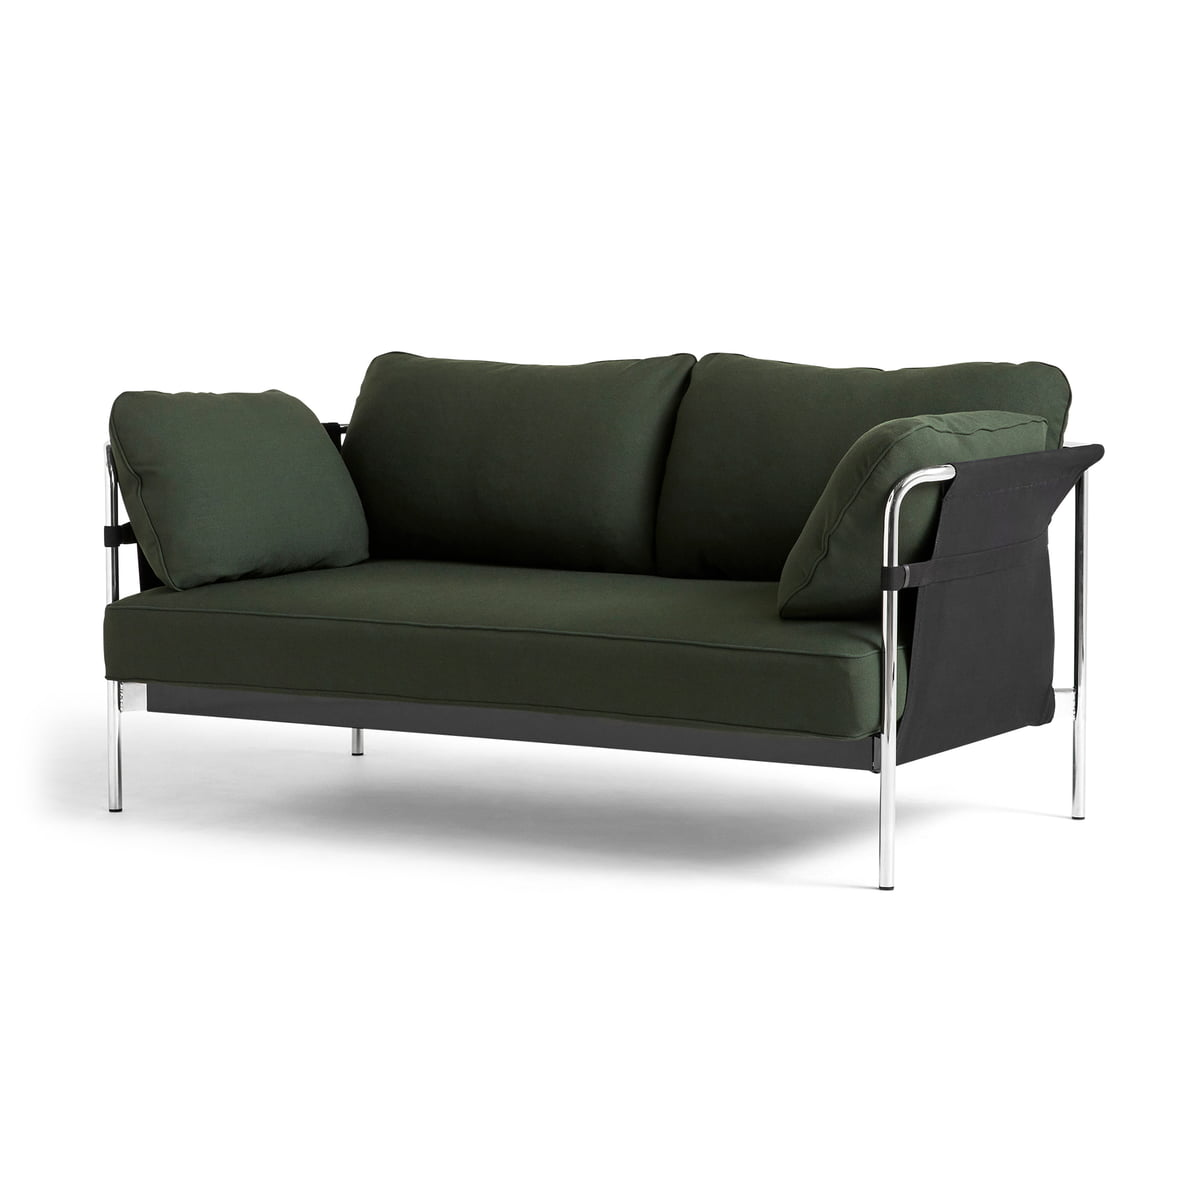 Phenomenal Hay Can 2 0 Sofa 2 Seater Chrome Can Vas Black Steelcut 975 Dark Green Andrewgaddart Wooden Chair Designs For Living Room Andrewgaddartcom